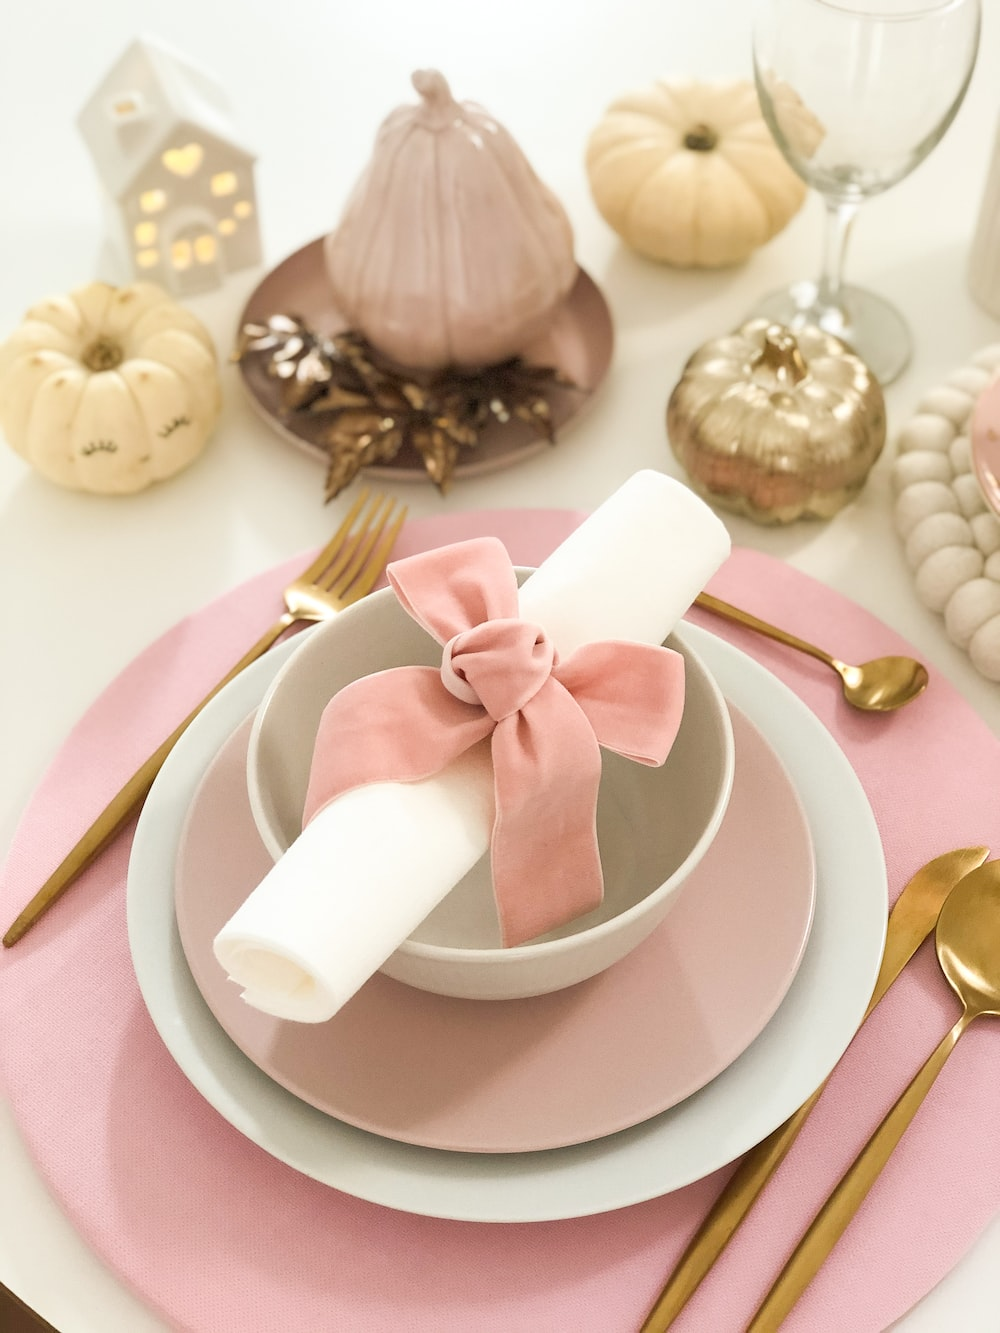 white and pink bowl and plate